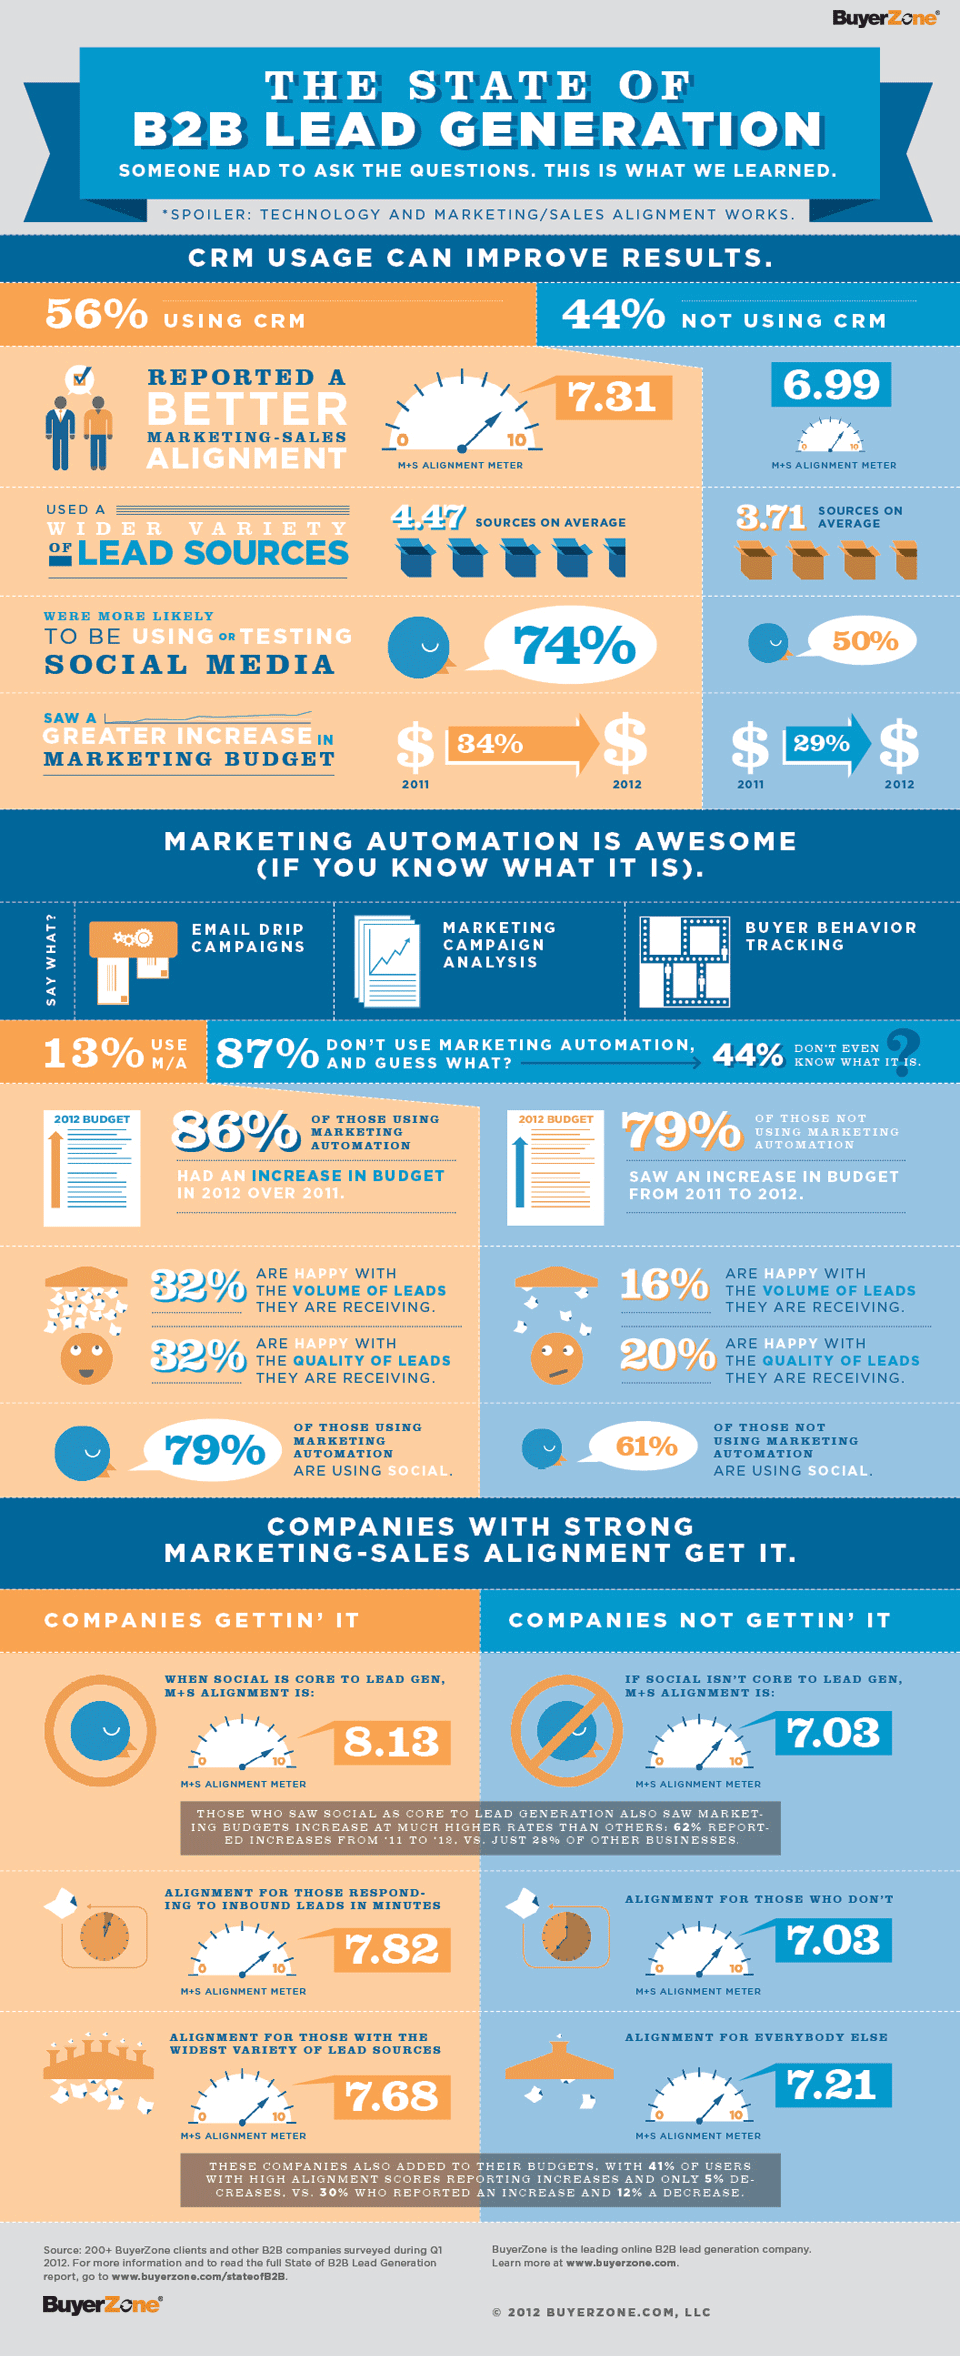 The State of B2B Lead Generation